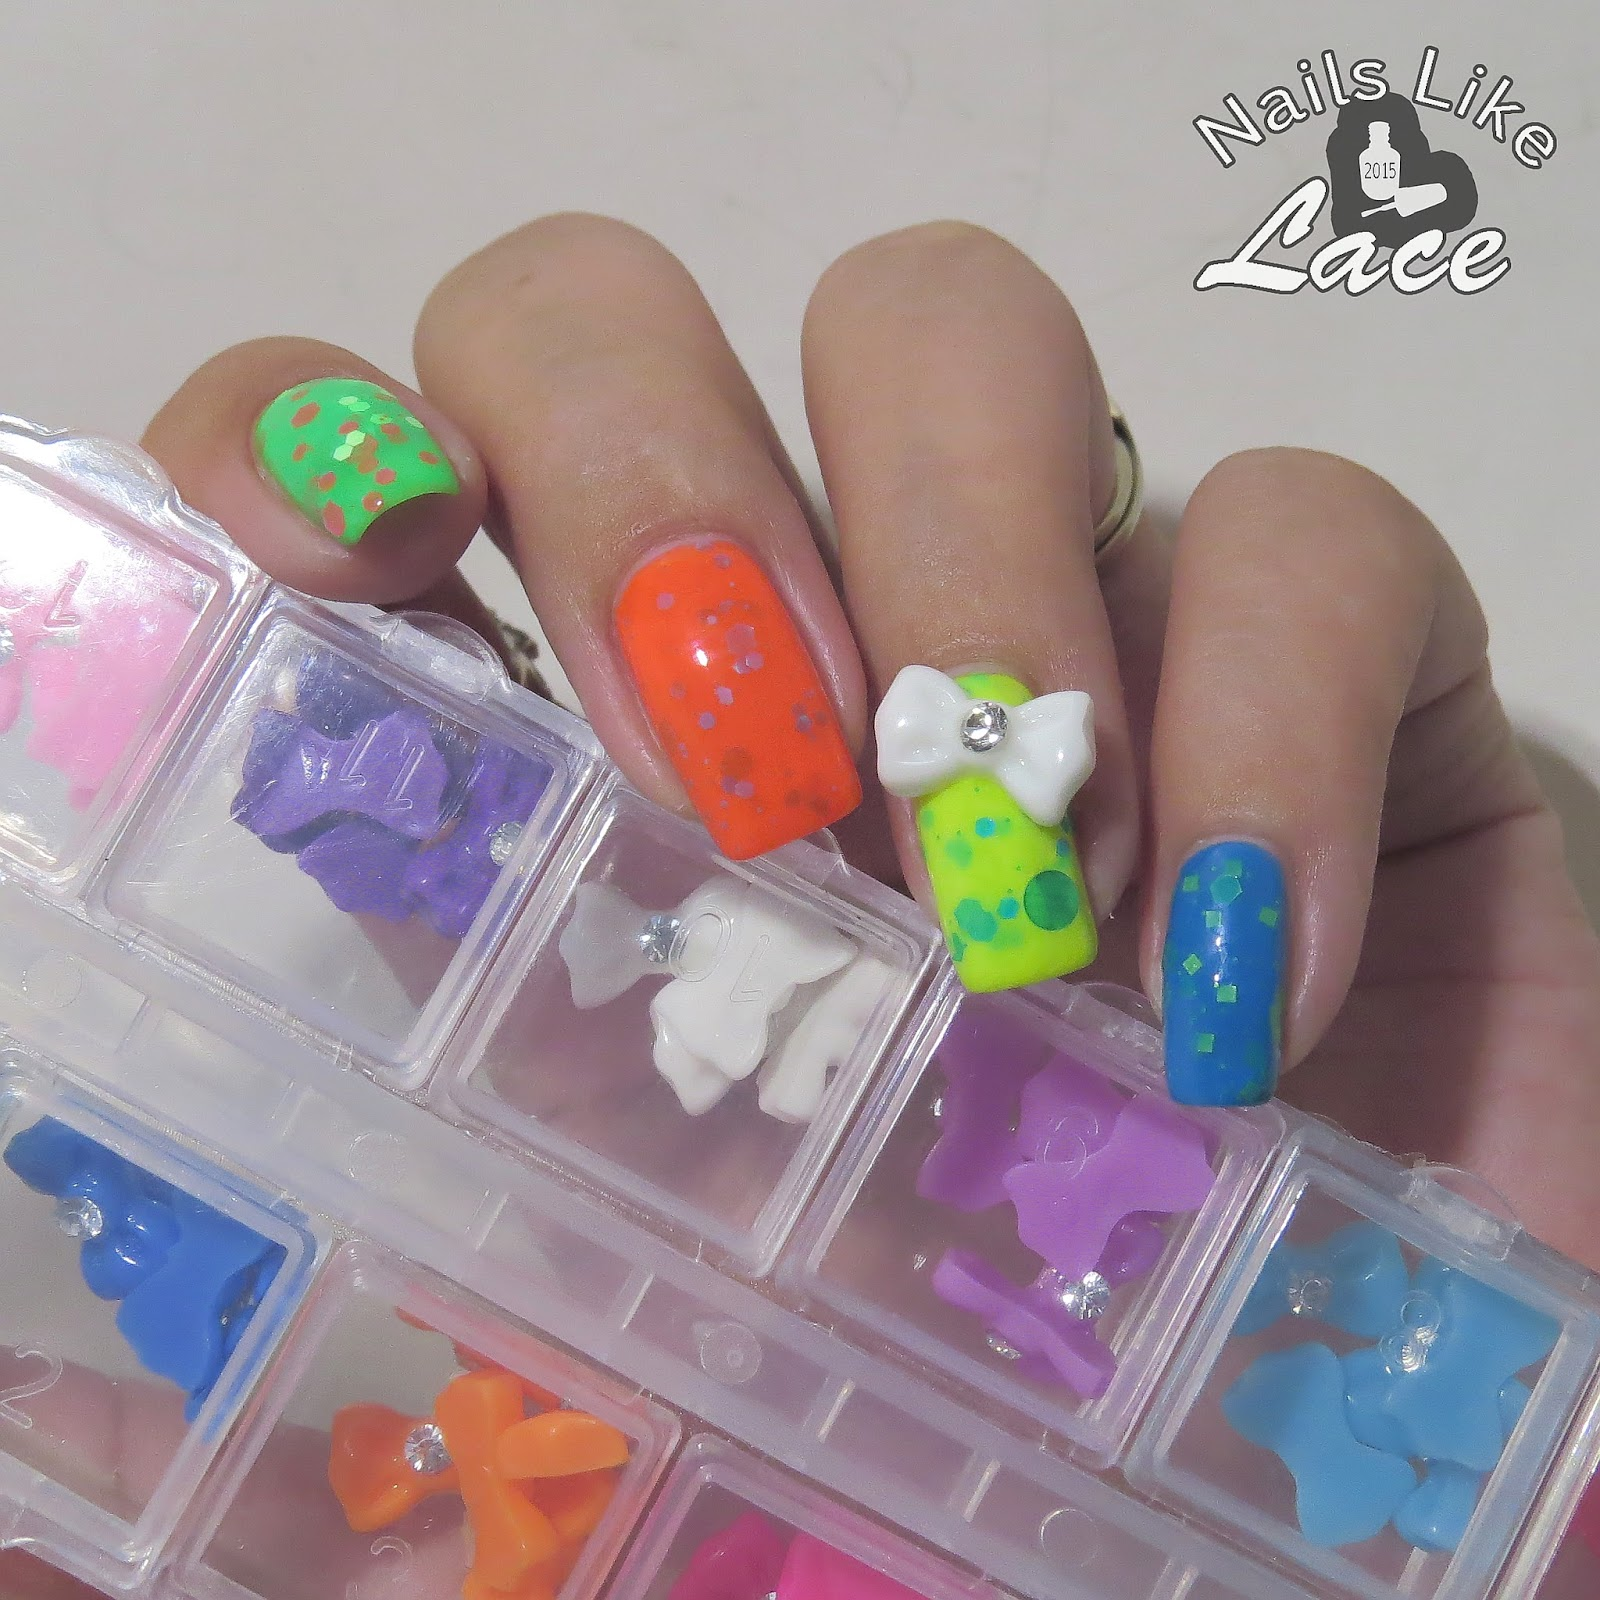 NailsLikeLace: Neon Skittles with 3D Bows: Lady Queen Nail Decor Review